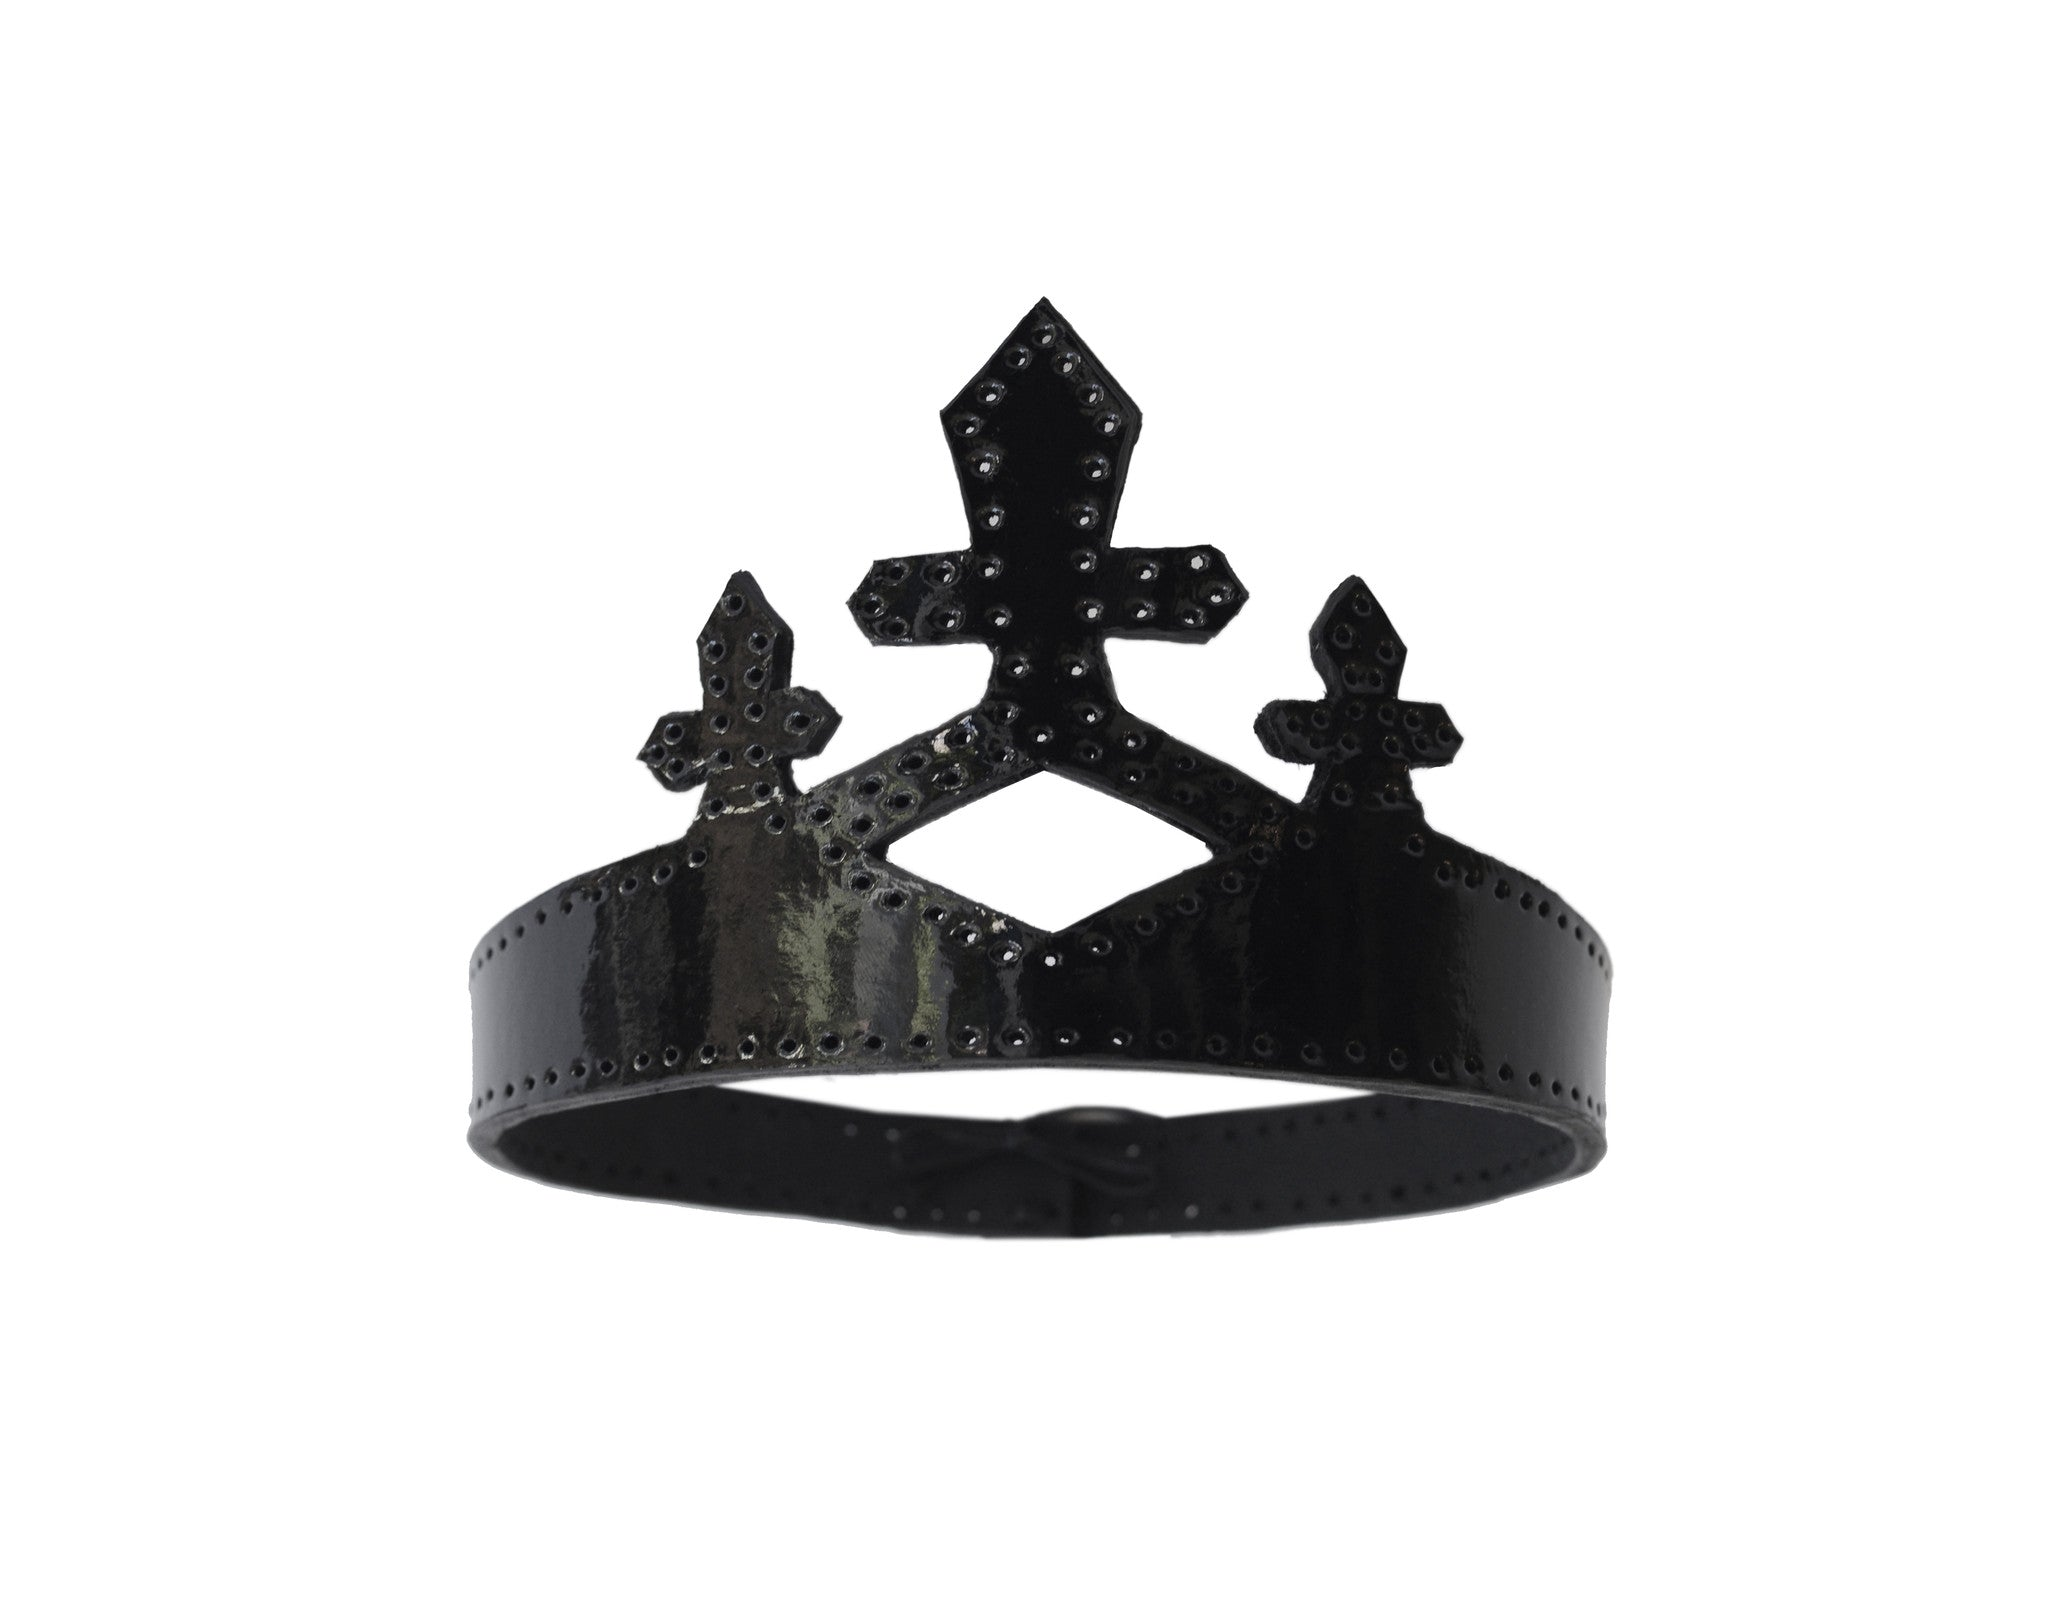 Black Patent Leather Queen Crown Wendy Nichol Designer Handmade in NYC New York City cut out Diamond Crosses Leather Cross Victorian Medieval Crown Headpiece Headdress Headband Tiara Diadem High Priestess Sorceress Wedding Bride Bridal Crown Veil